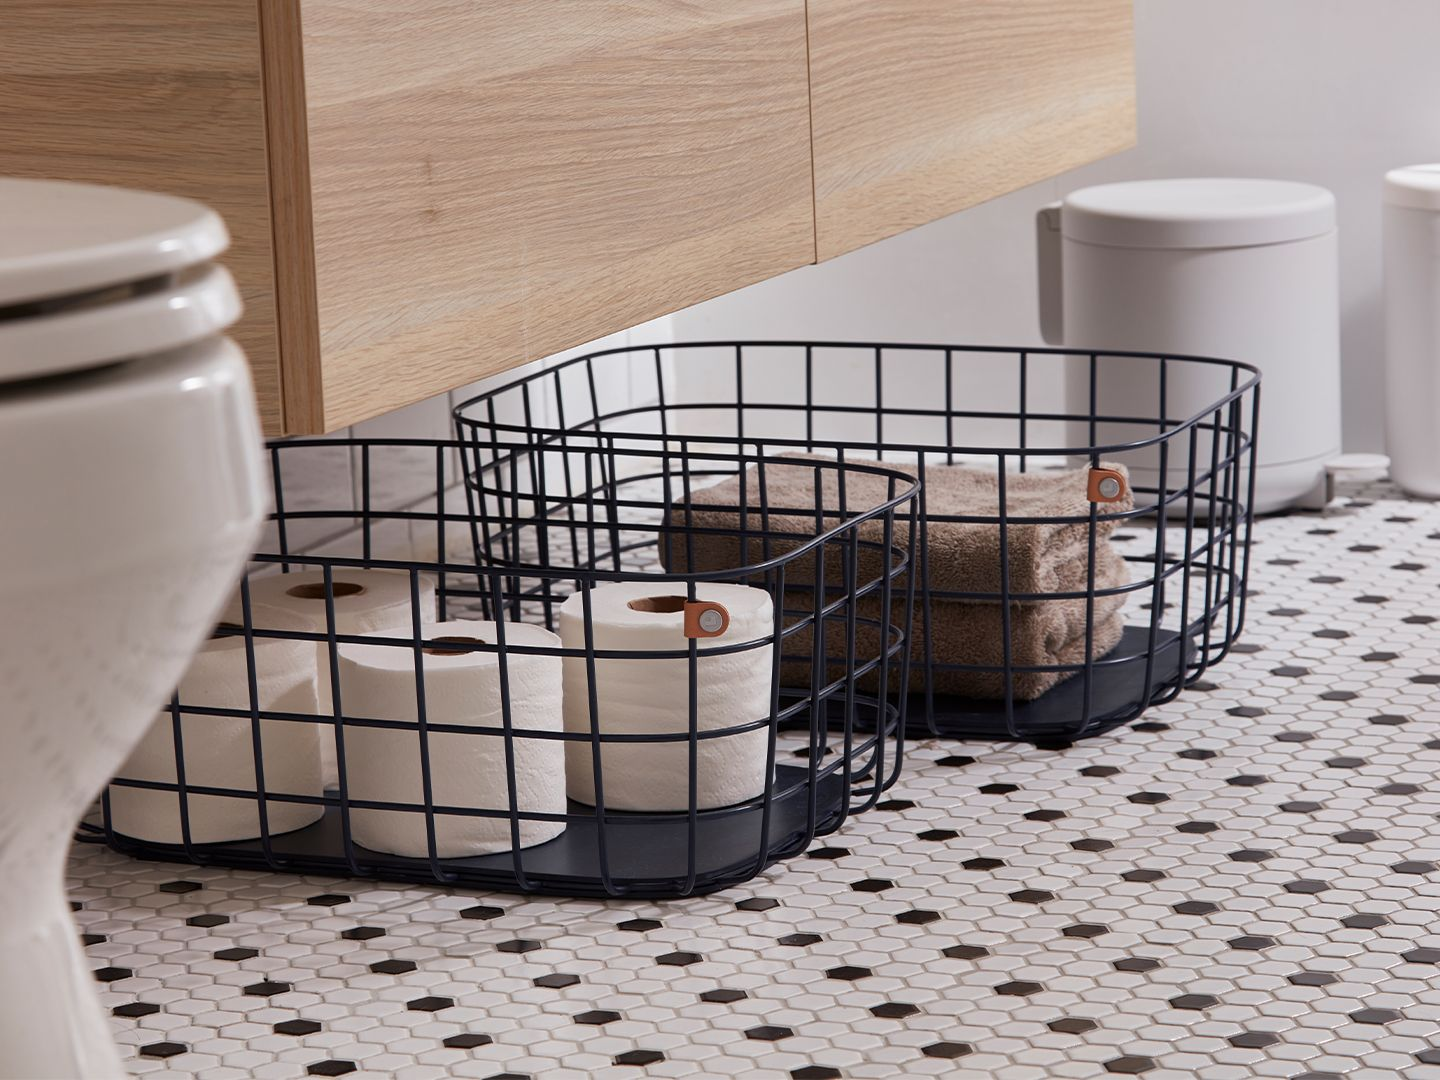 An image of the Open Spaces wire baskets in black.